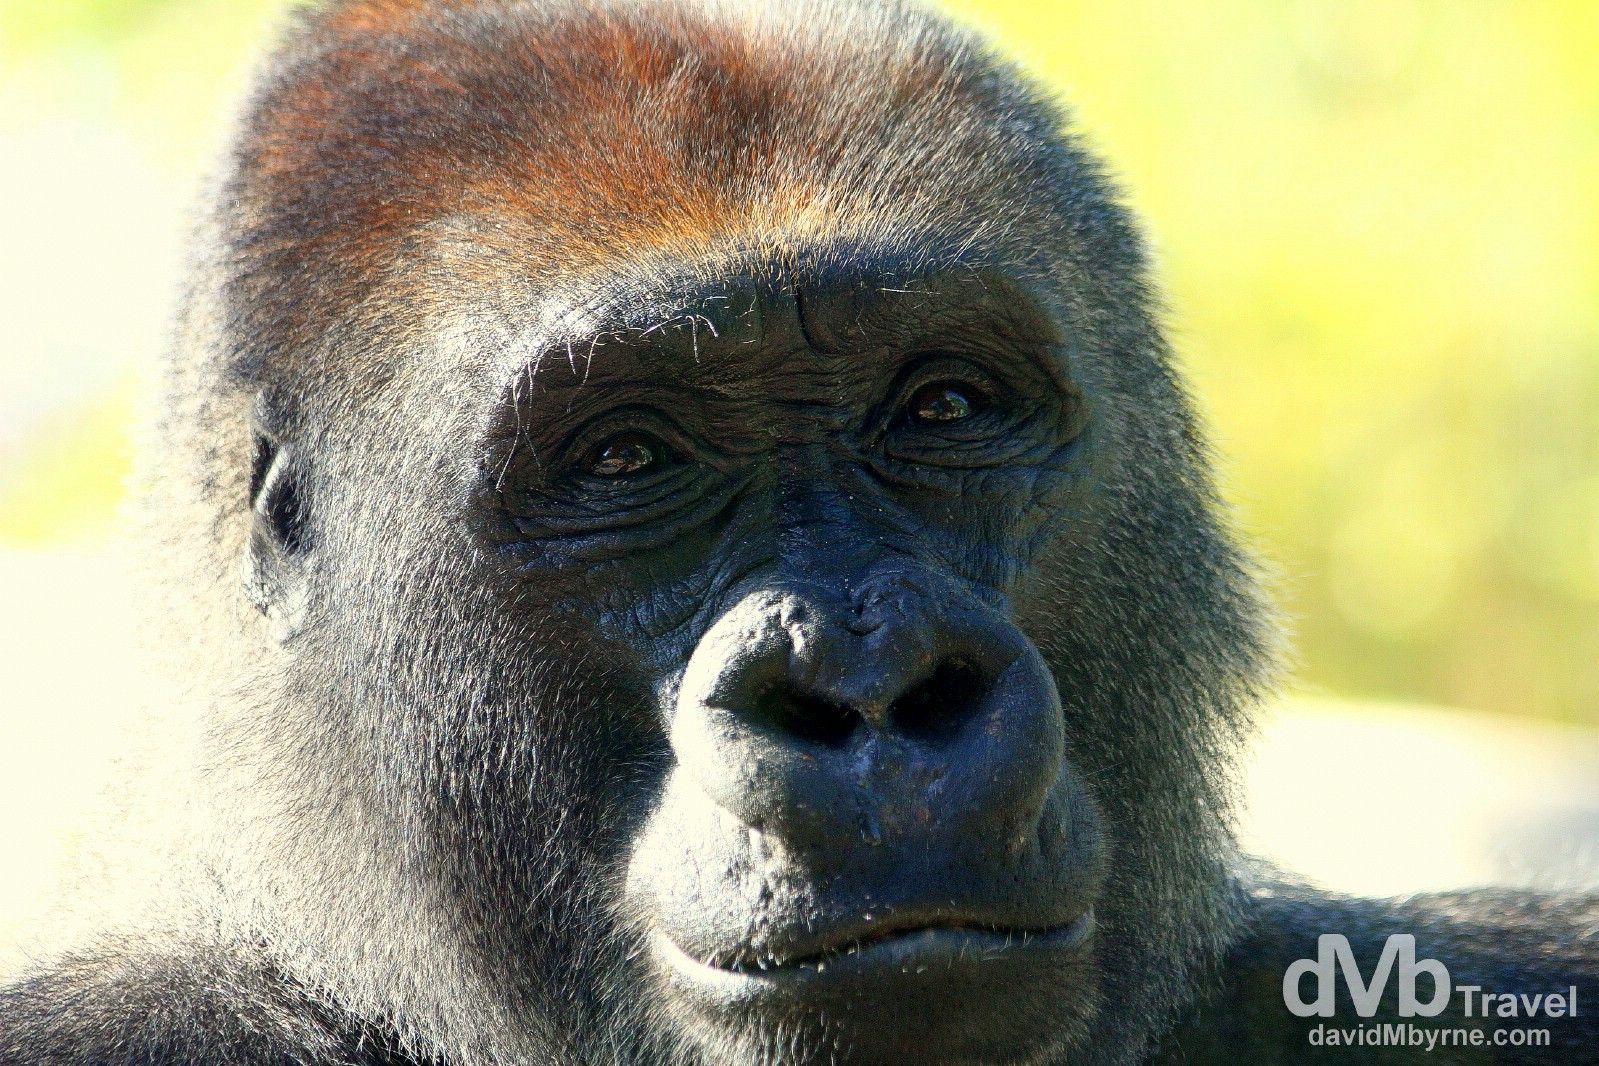 A gorilla in San Diego Zoo, California, USA. April 17th 2013.